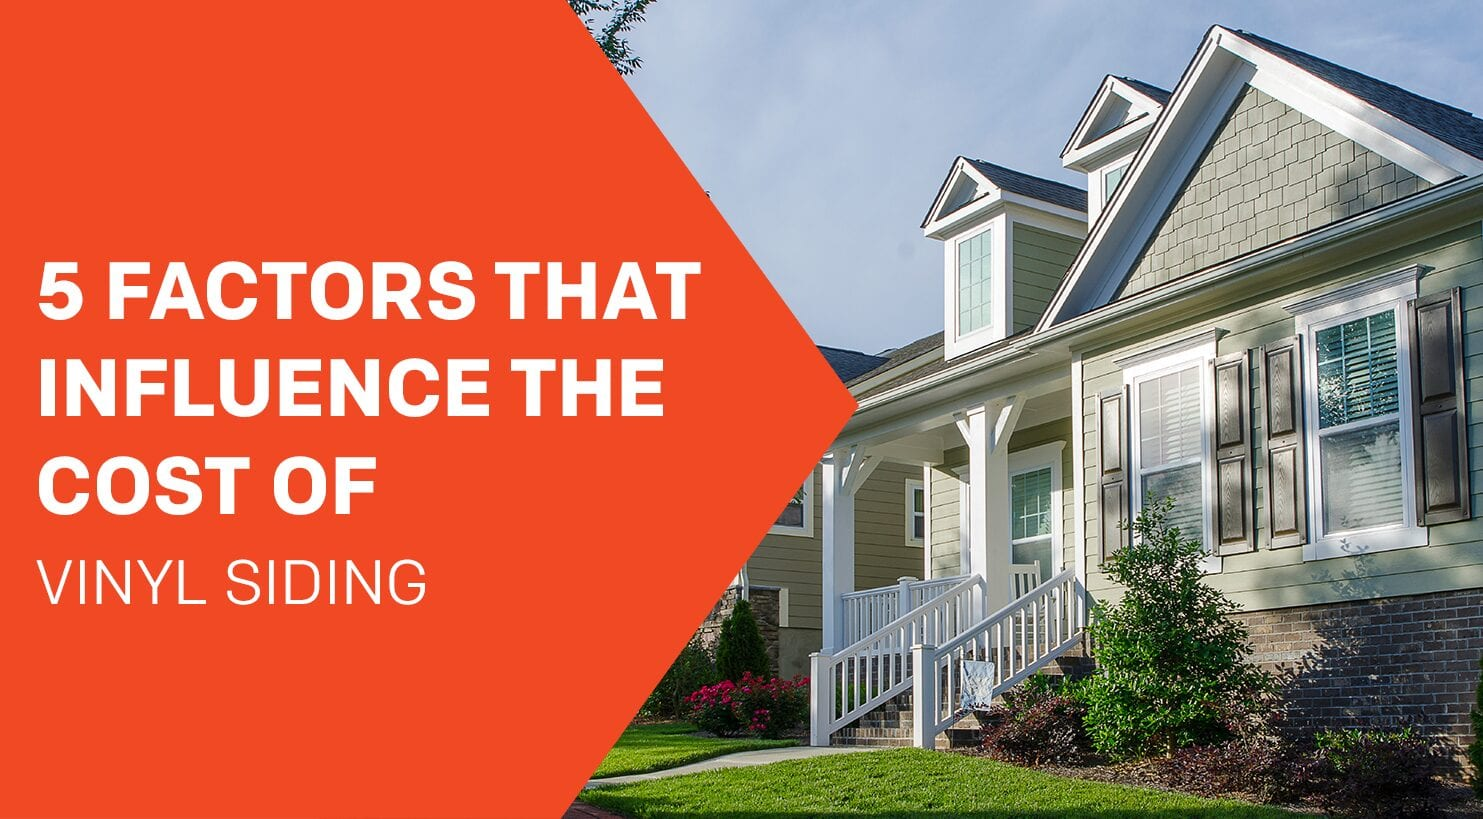 5 Factors That Influence The Cost Of Vinyl Siding